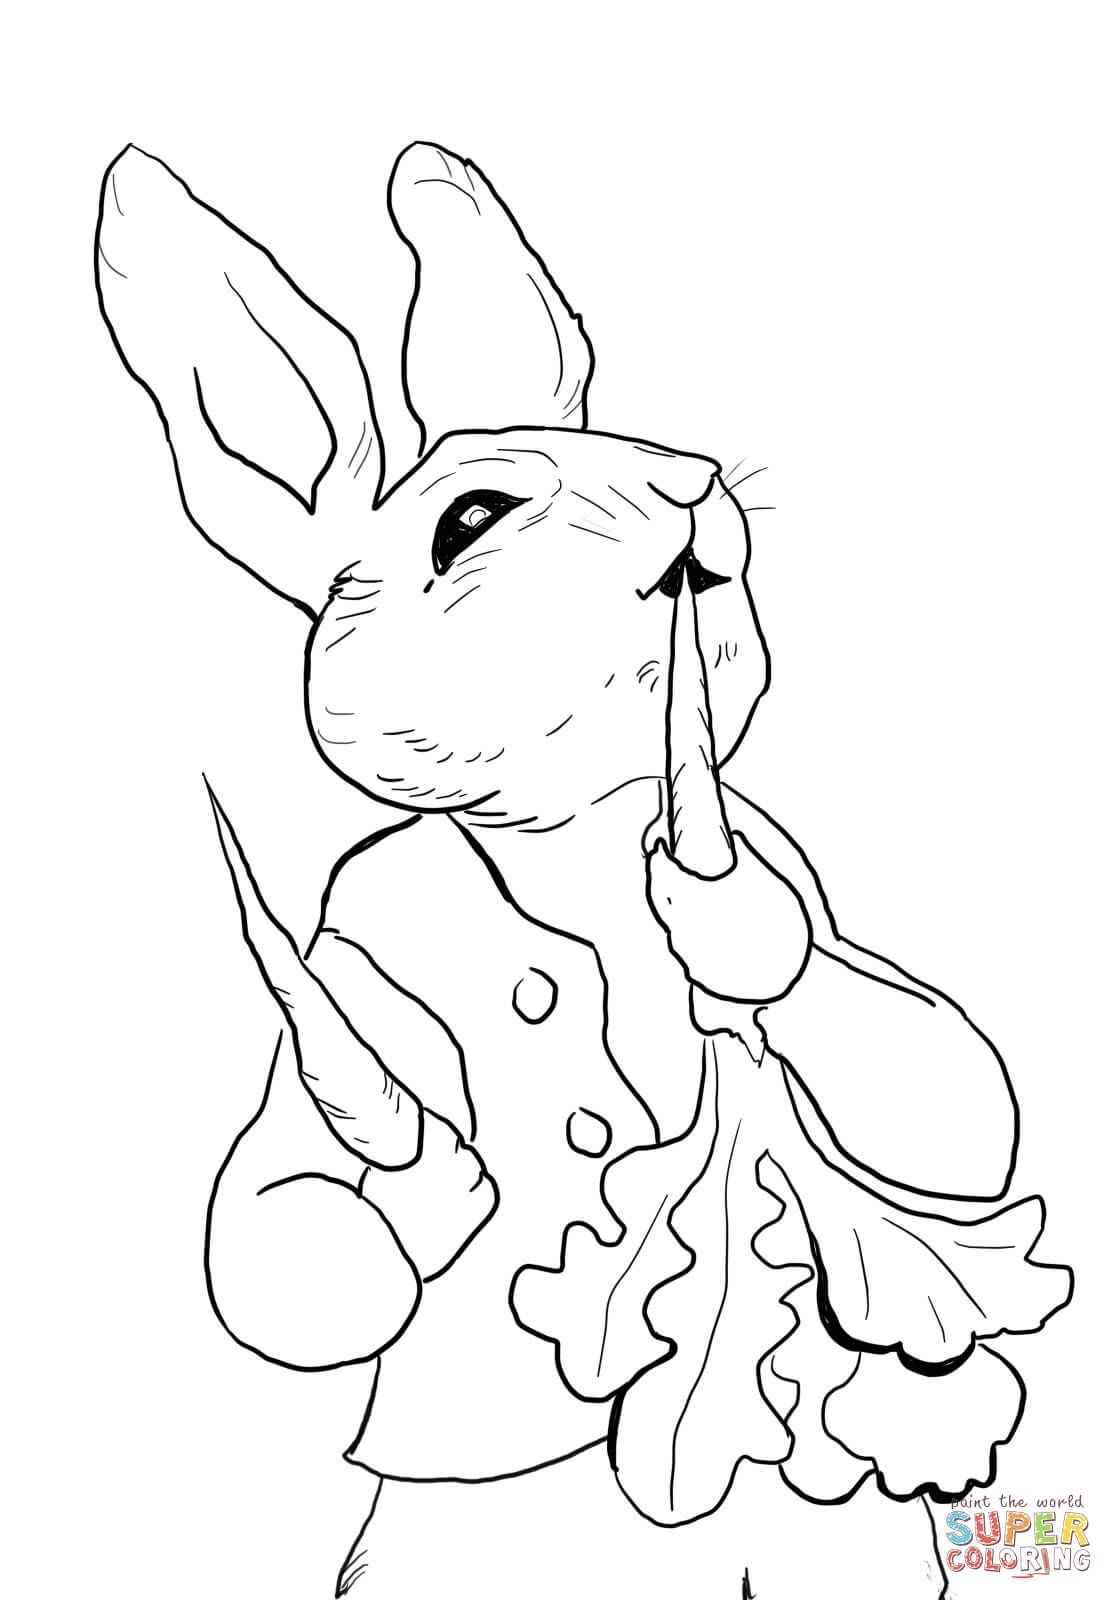 Peter Rabbit Eating Radishes Coloring Page From Peter Rabbit